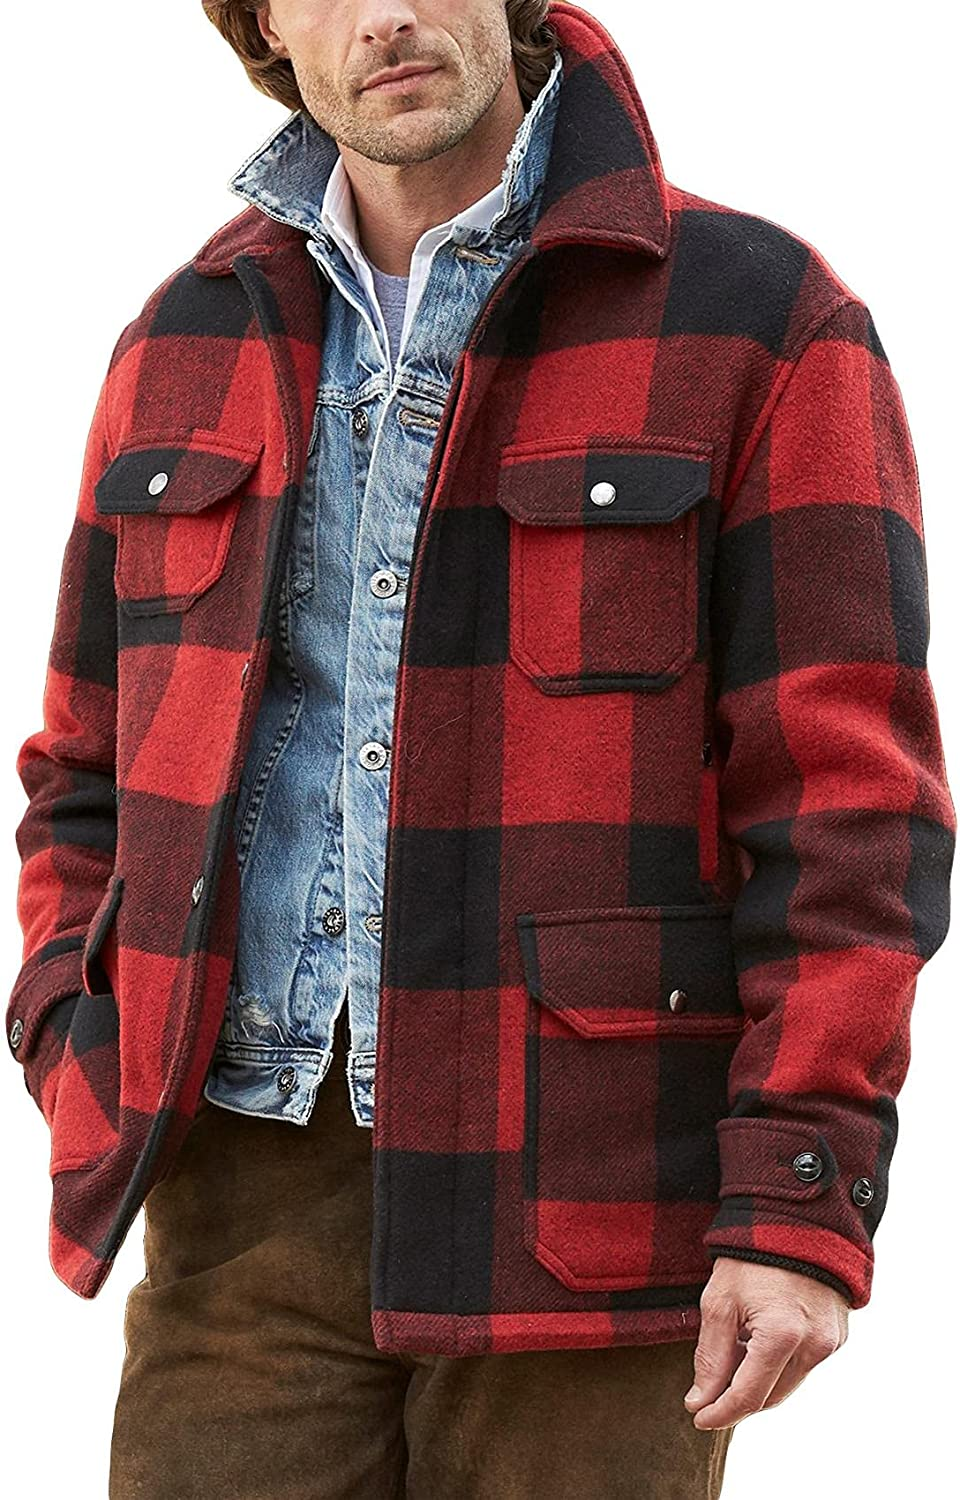 Gafeng Mens Flannel Quilted Shirt Jacket Fleece Buffalo Plaid Thermal Casual Fall Winter Outerwear Coat